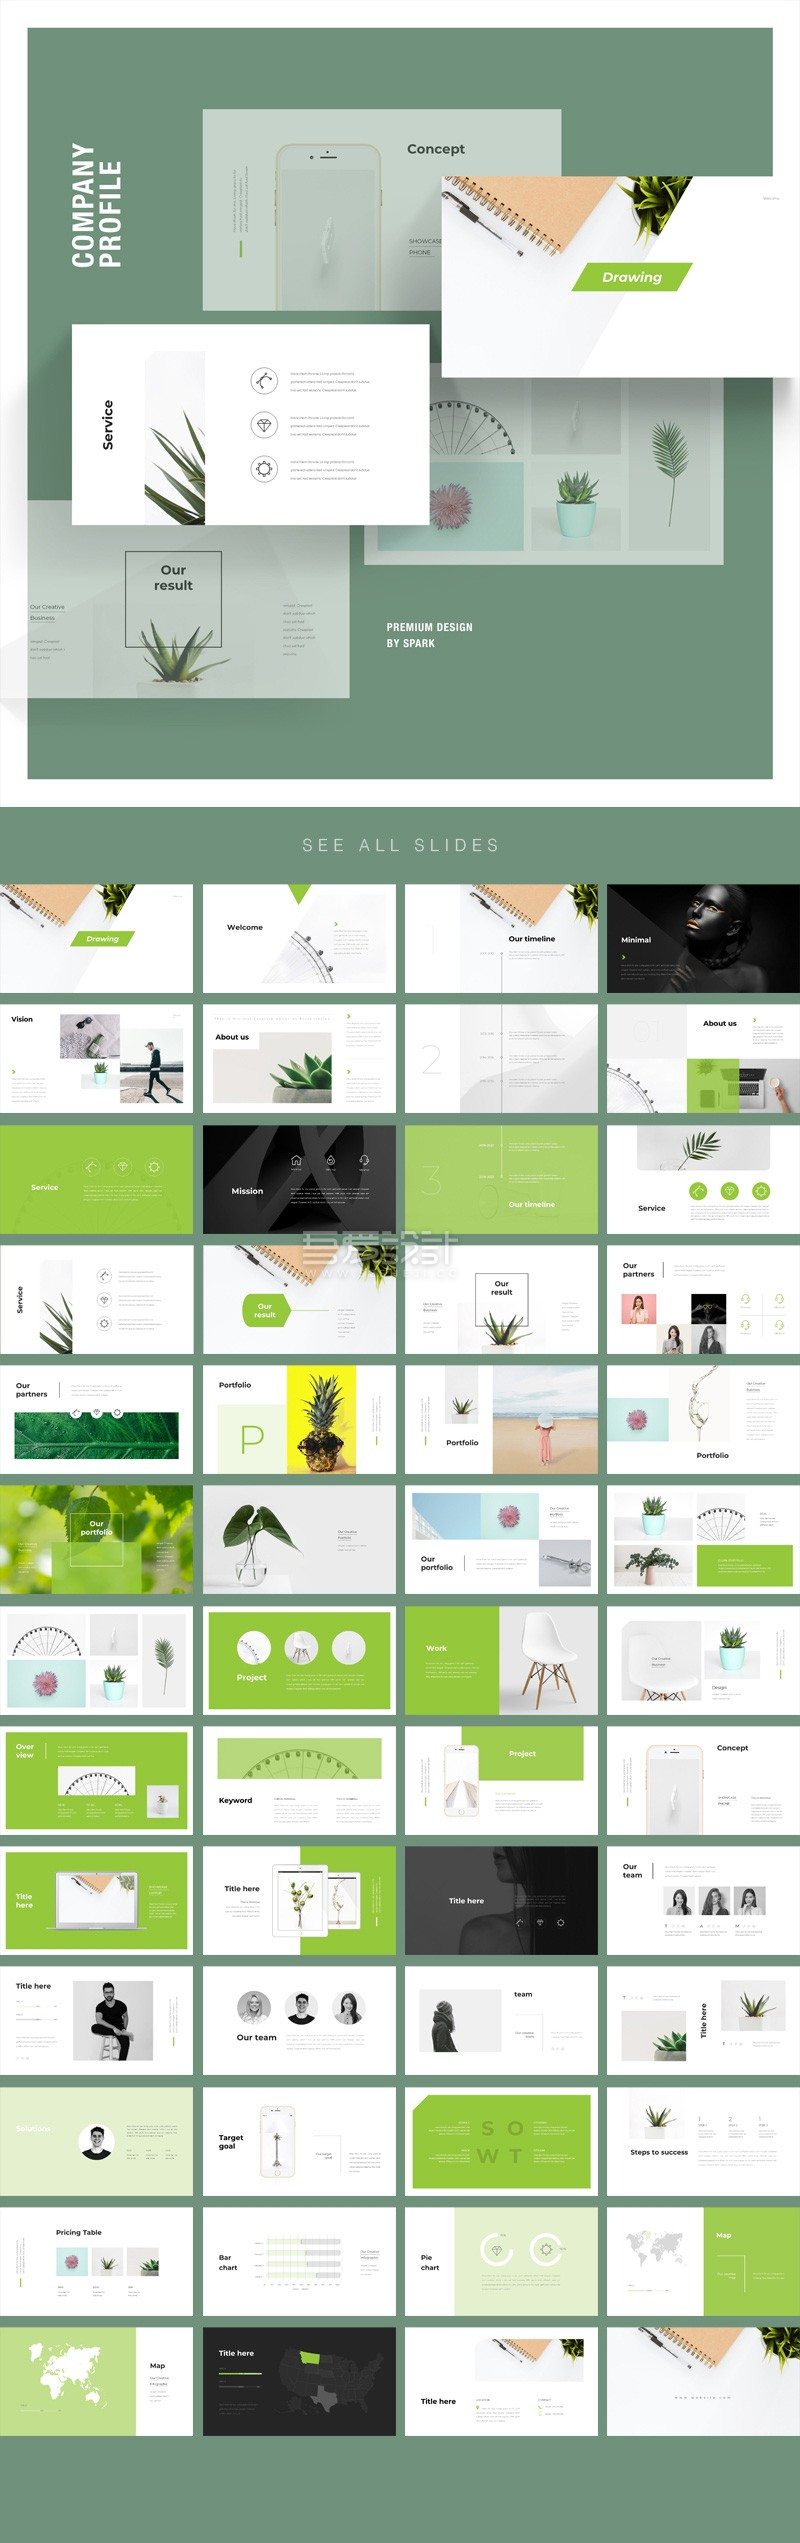 company-profile-powerpoint-template-1627-preview-a8